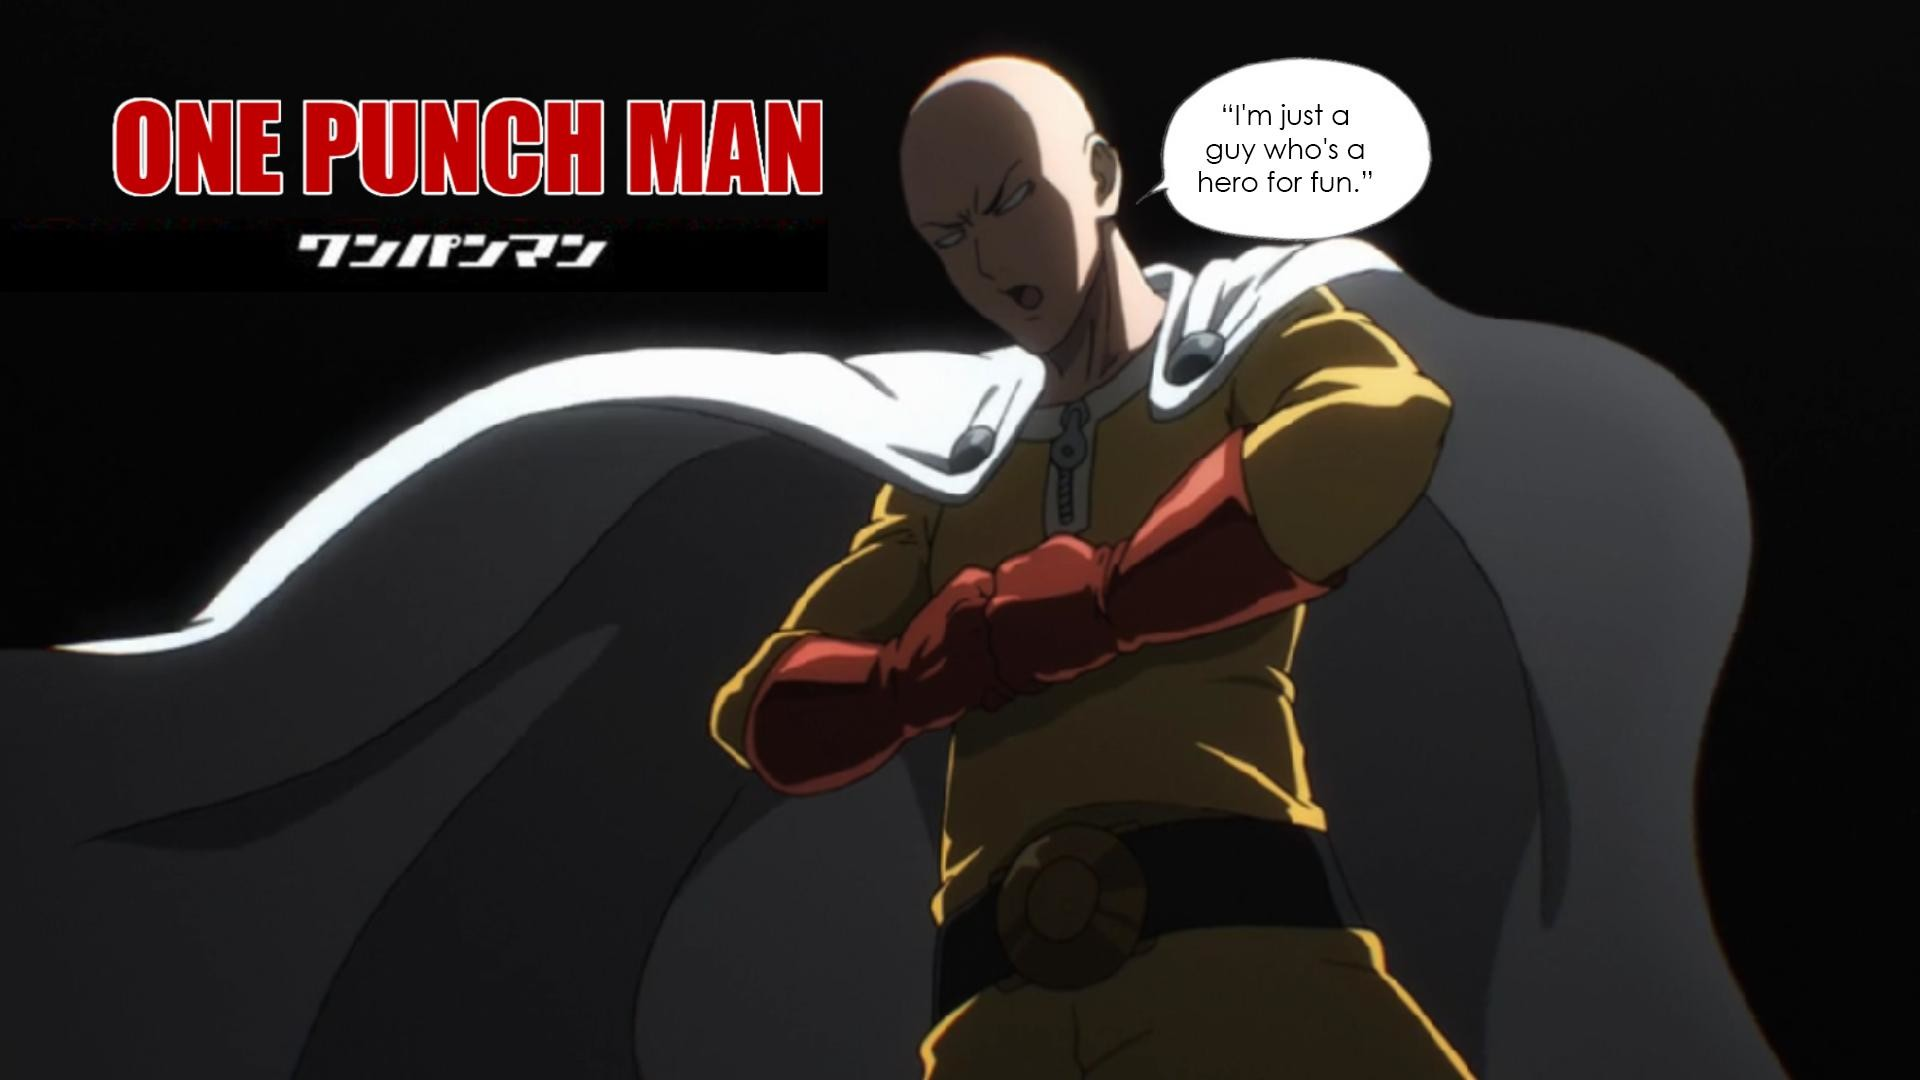 One Punch Man [1920×1080] Need #iPhone #6S #Plus #Wallpaper/